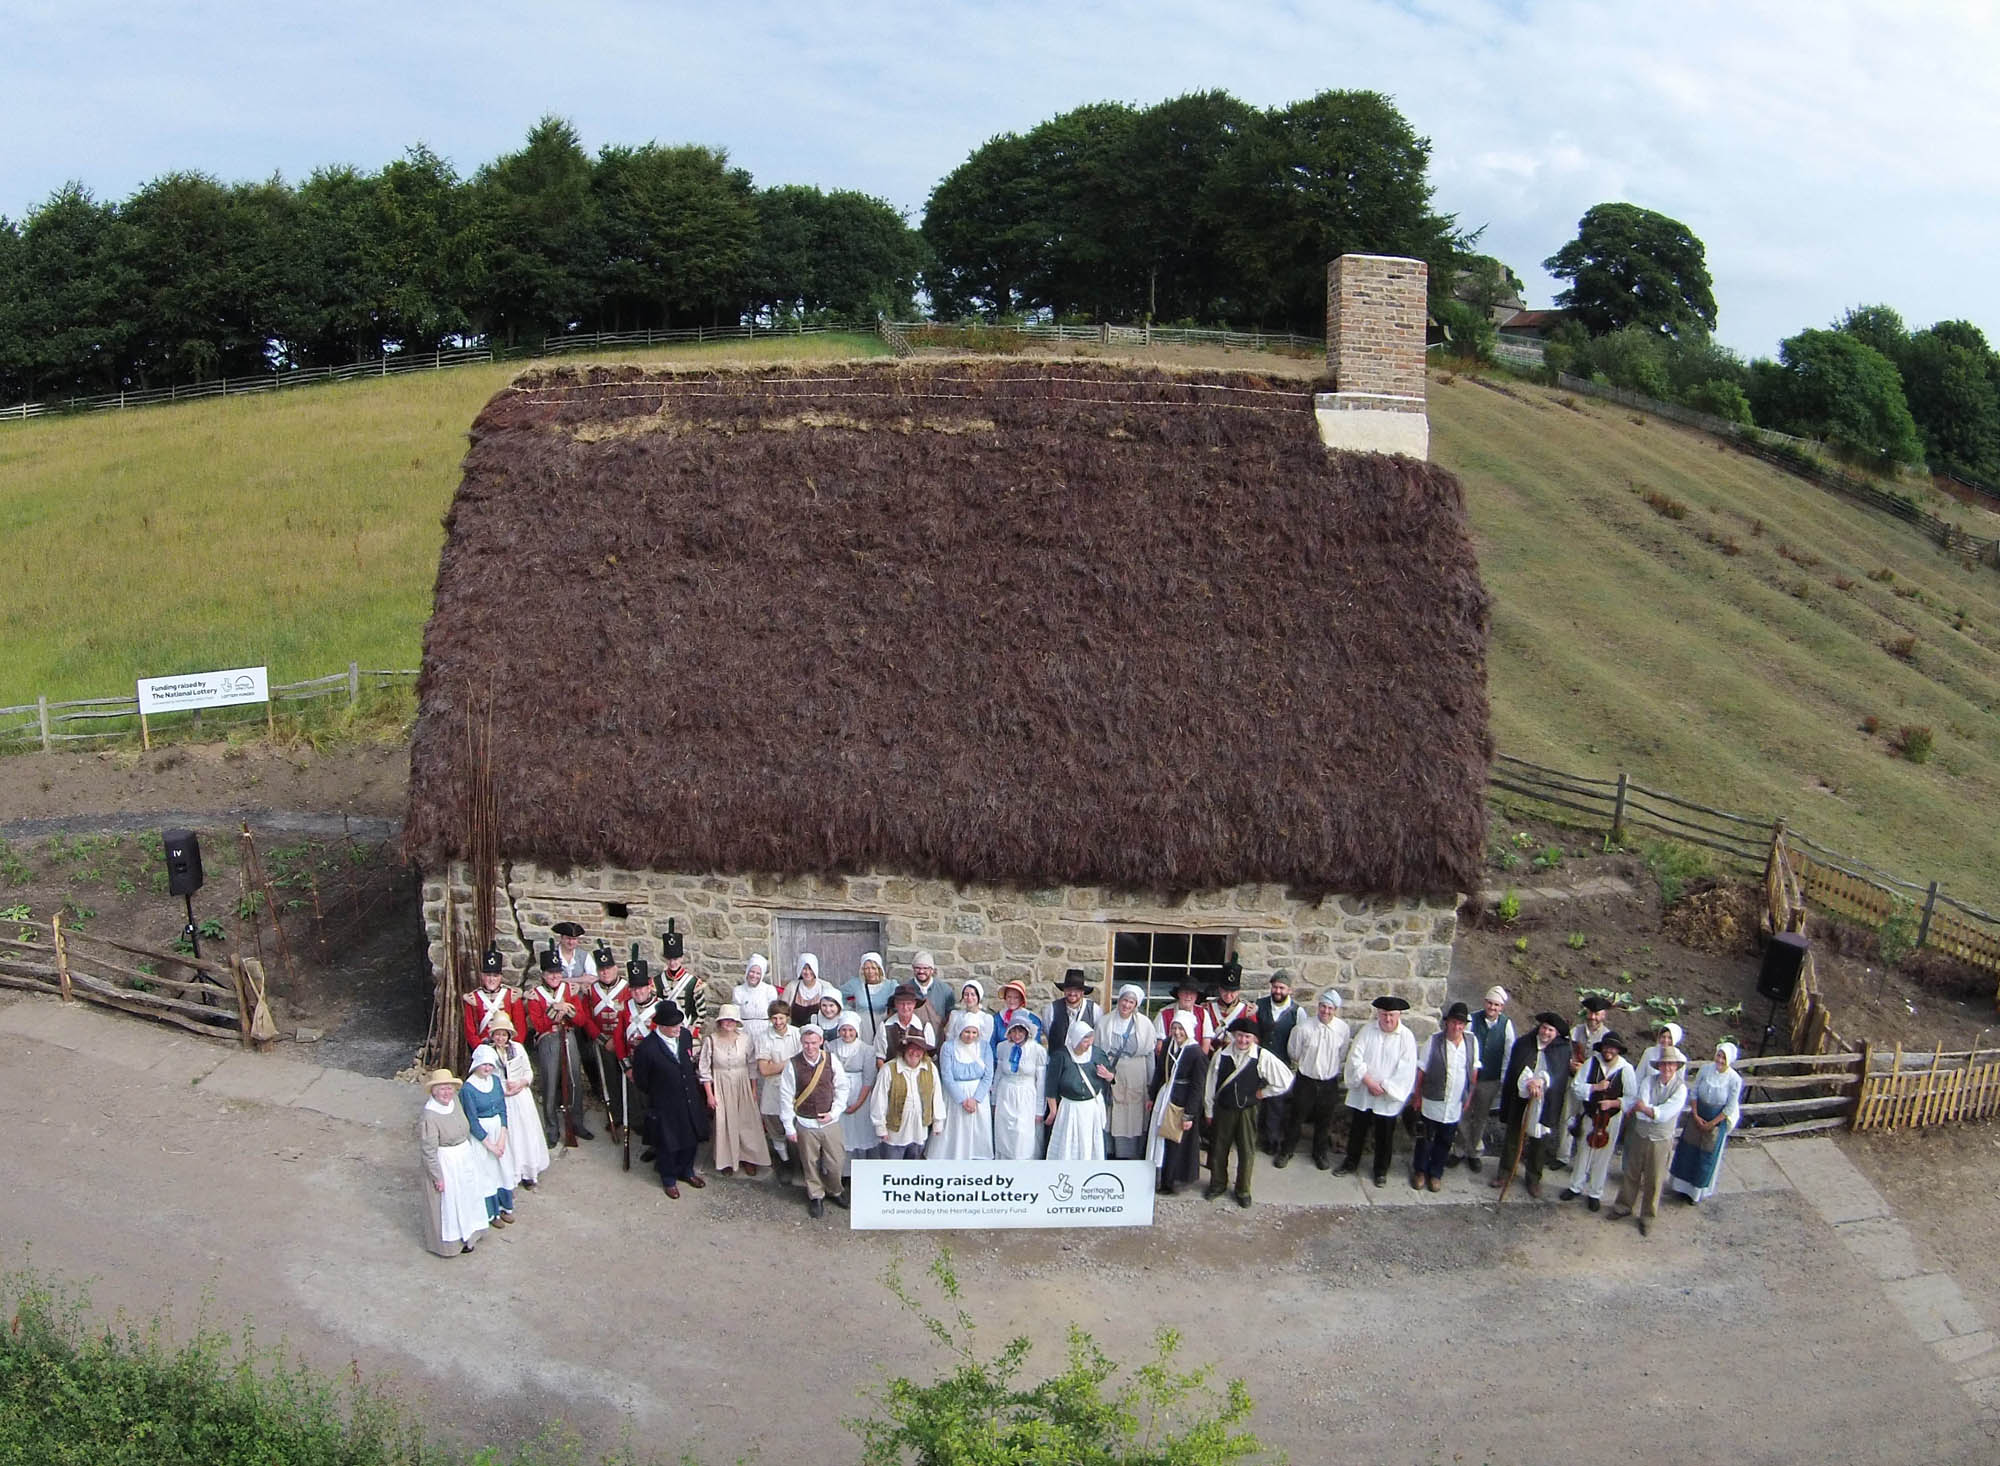 a photo of a thatched cottage with a group of people i Georgian dress outside it